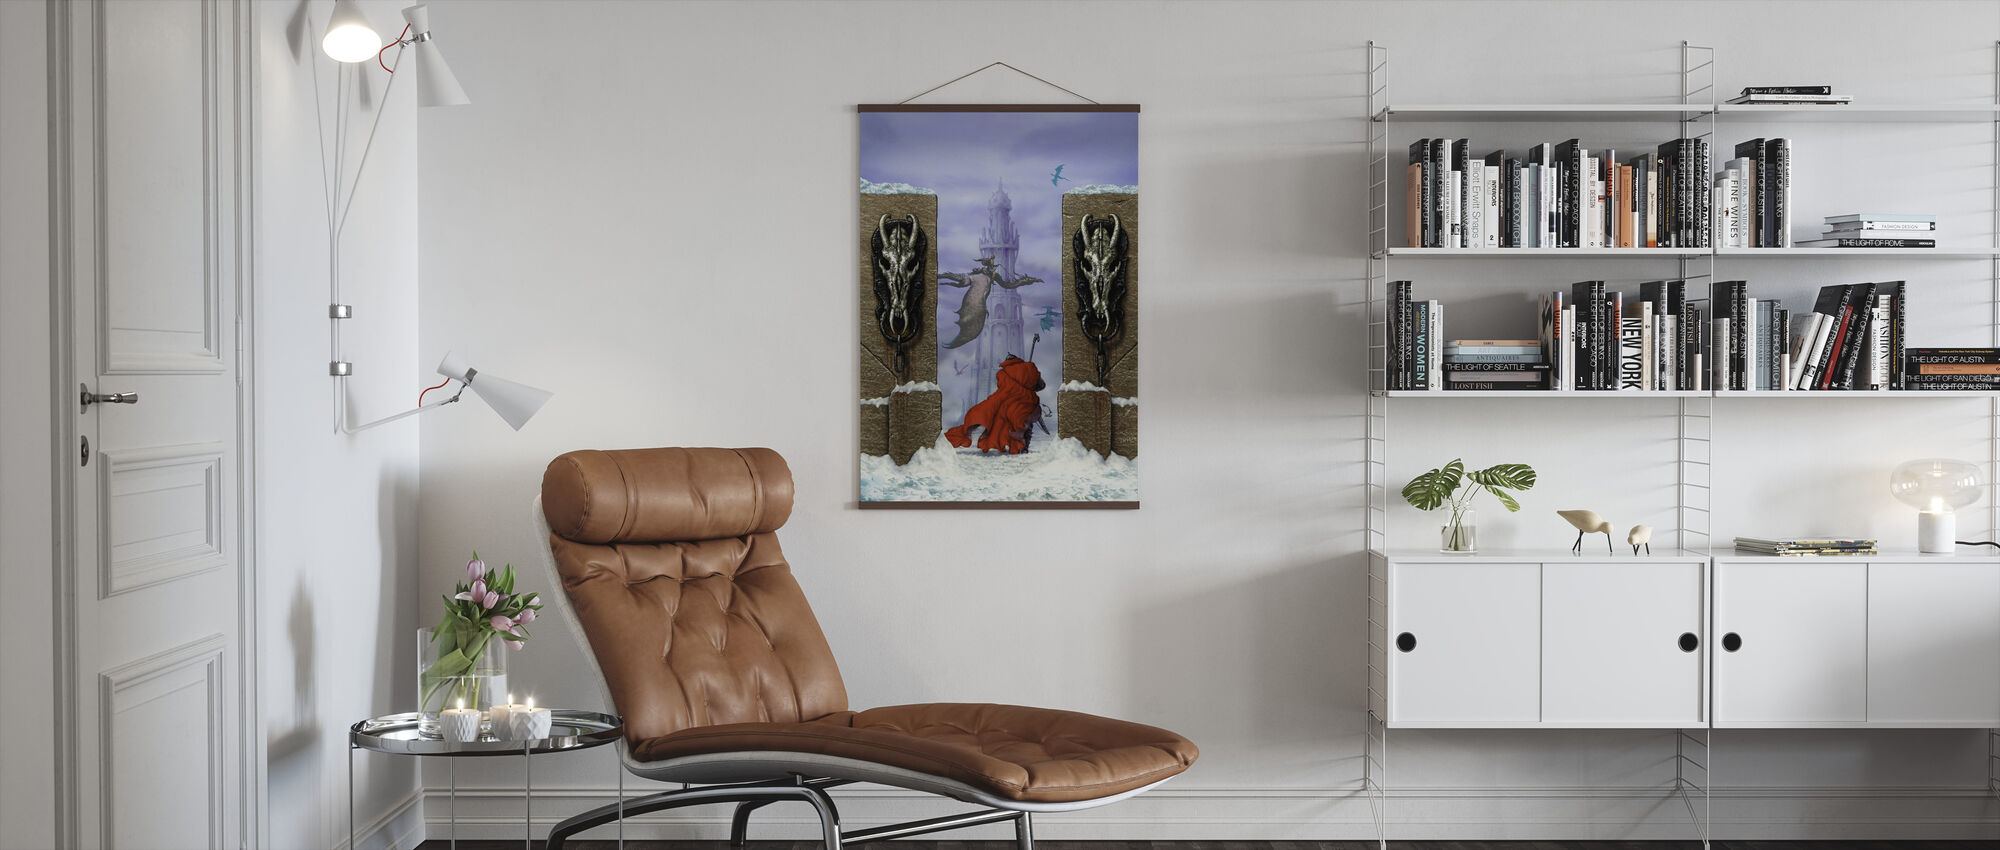 Dungeon - Poster - Living Room